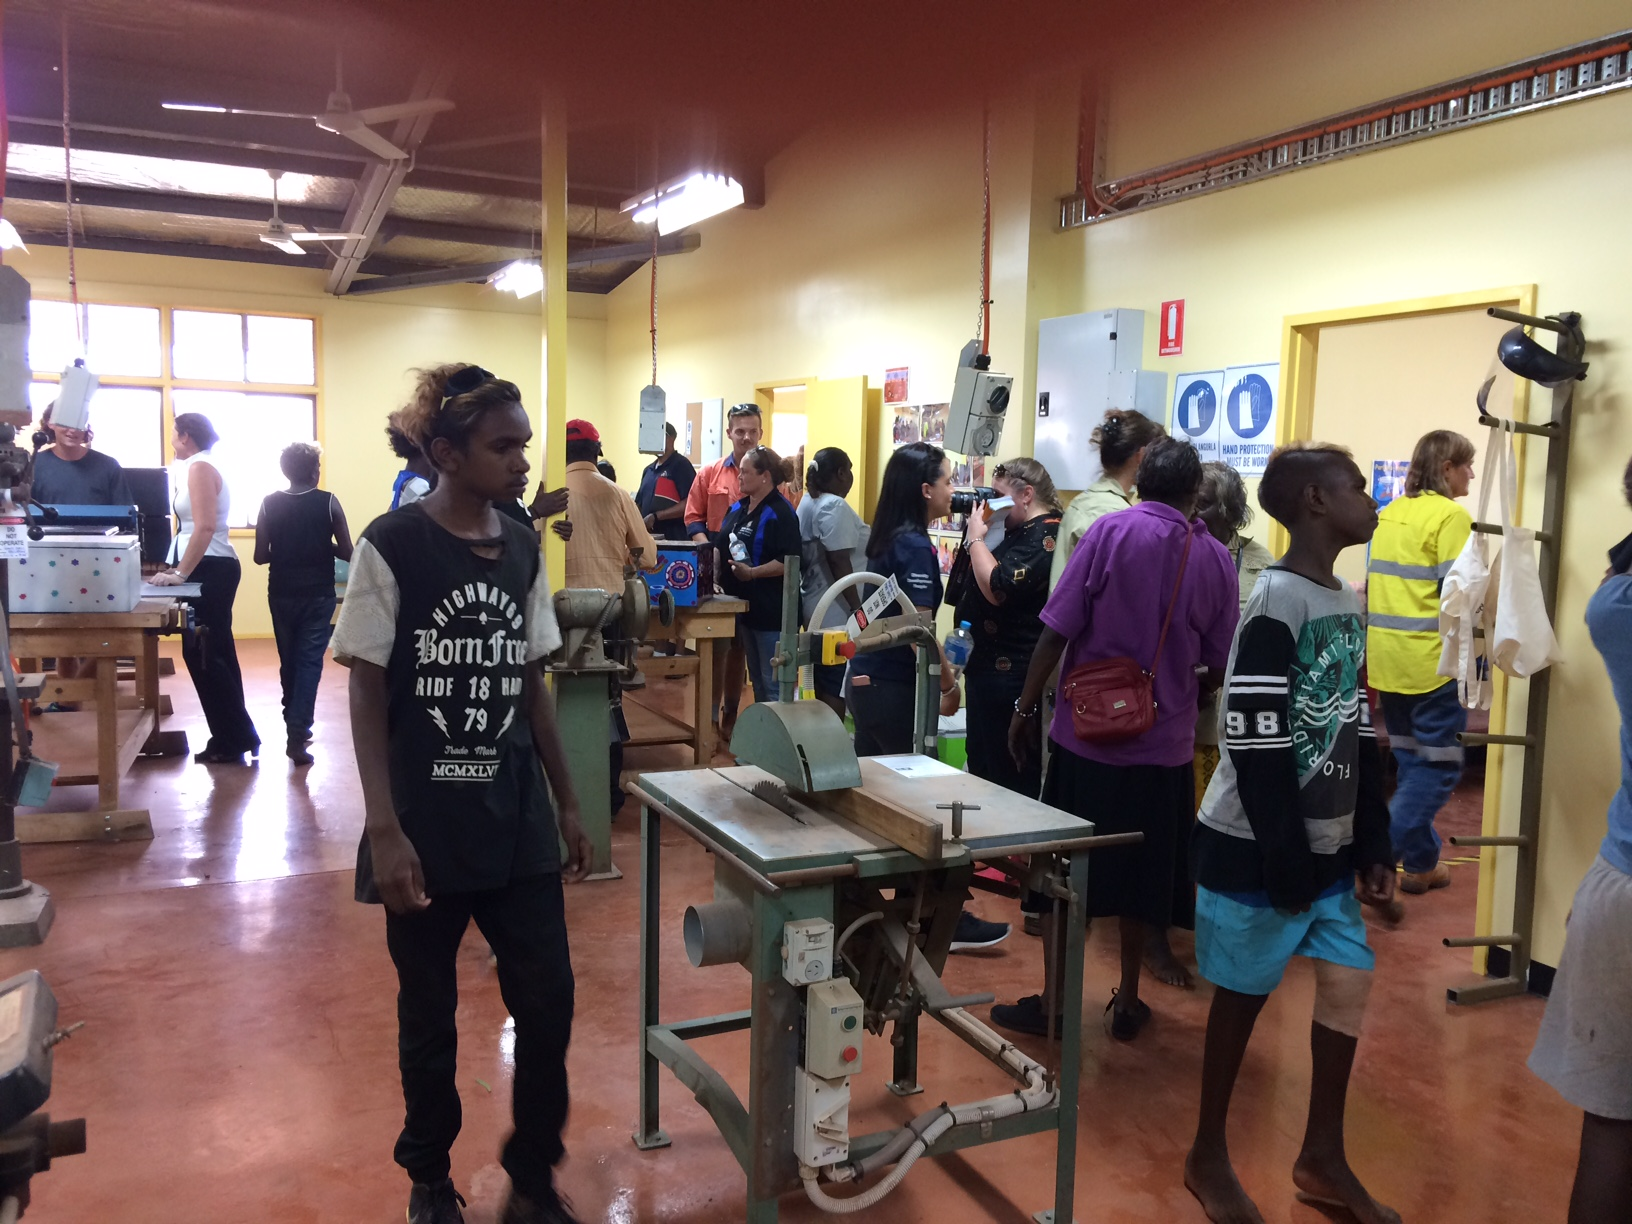 2016 Yuendumu Graduation Ceremony and career expo<br>